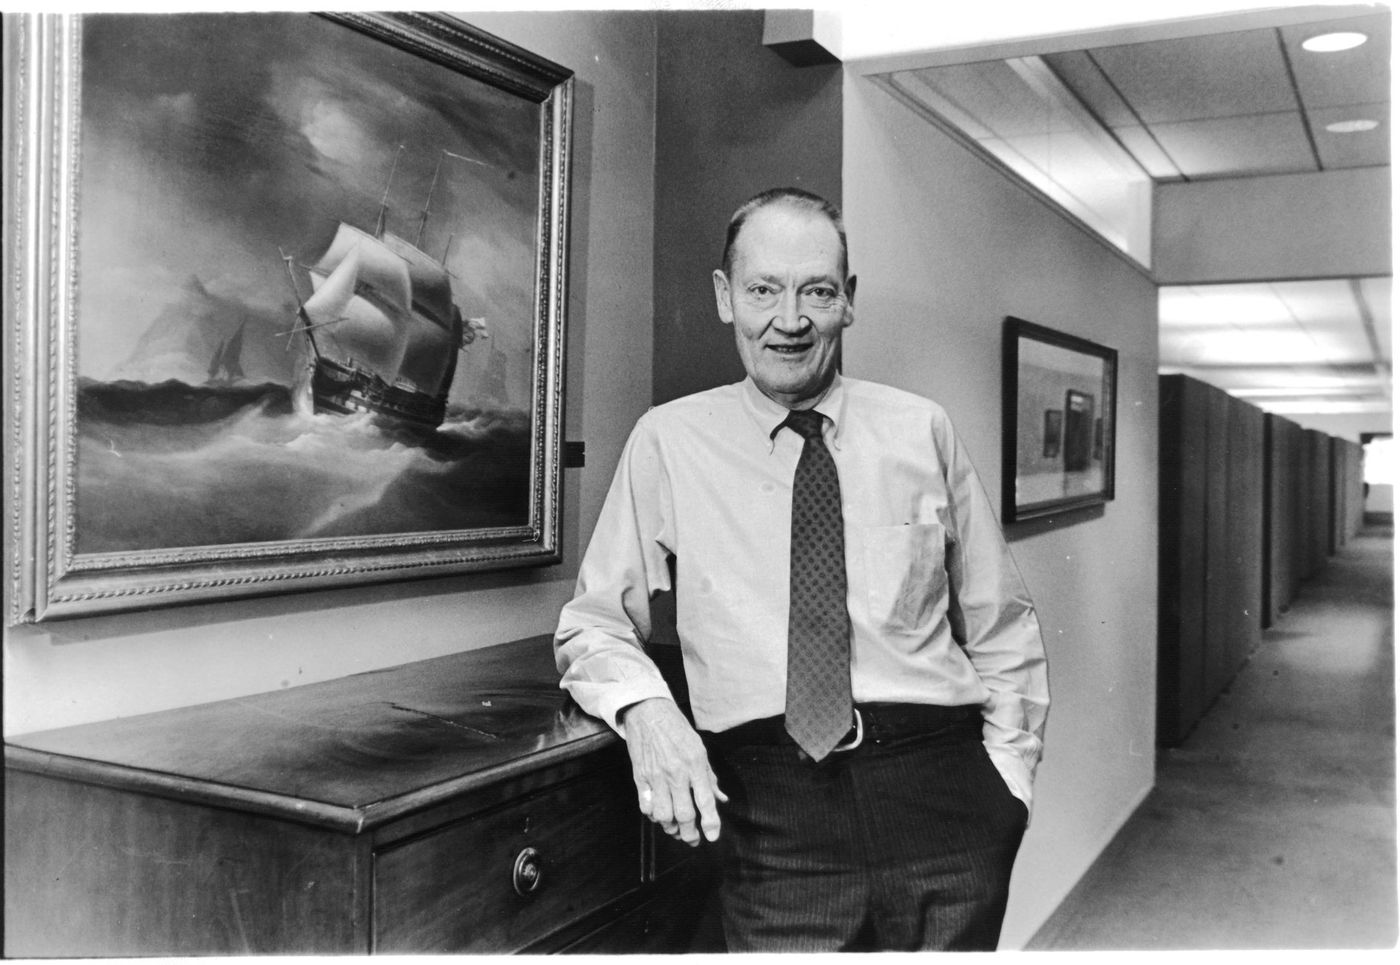 John Bogle, Vanguard chief inside the corporate office in Chesterbrook in 1989.